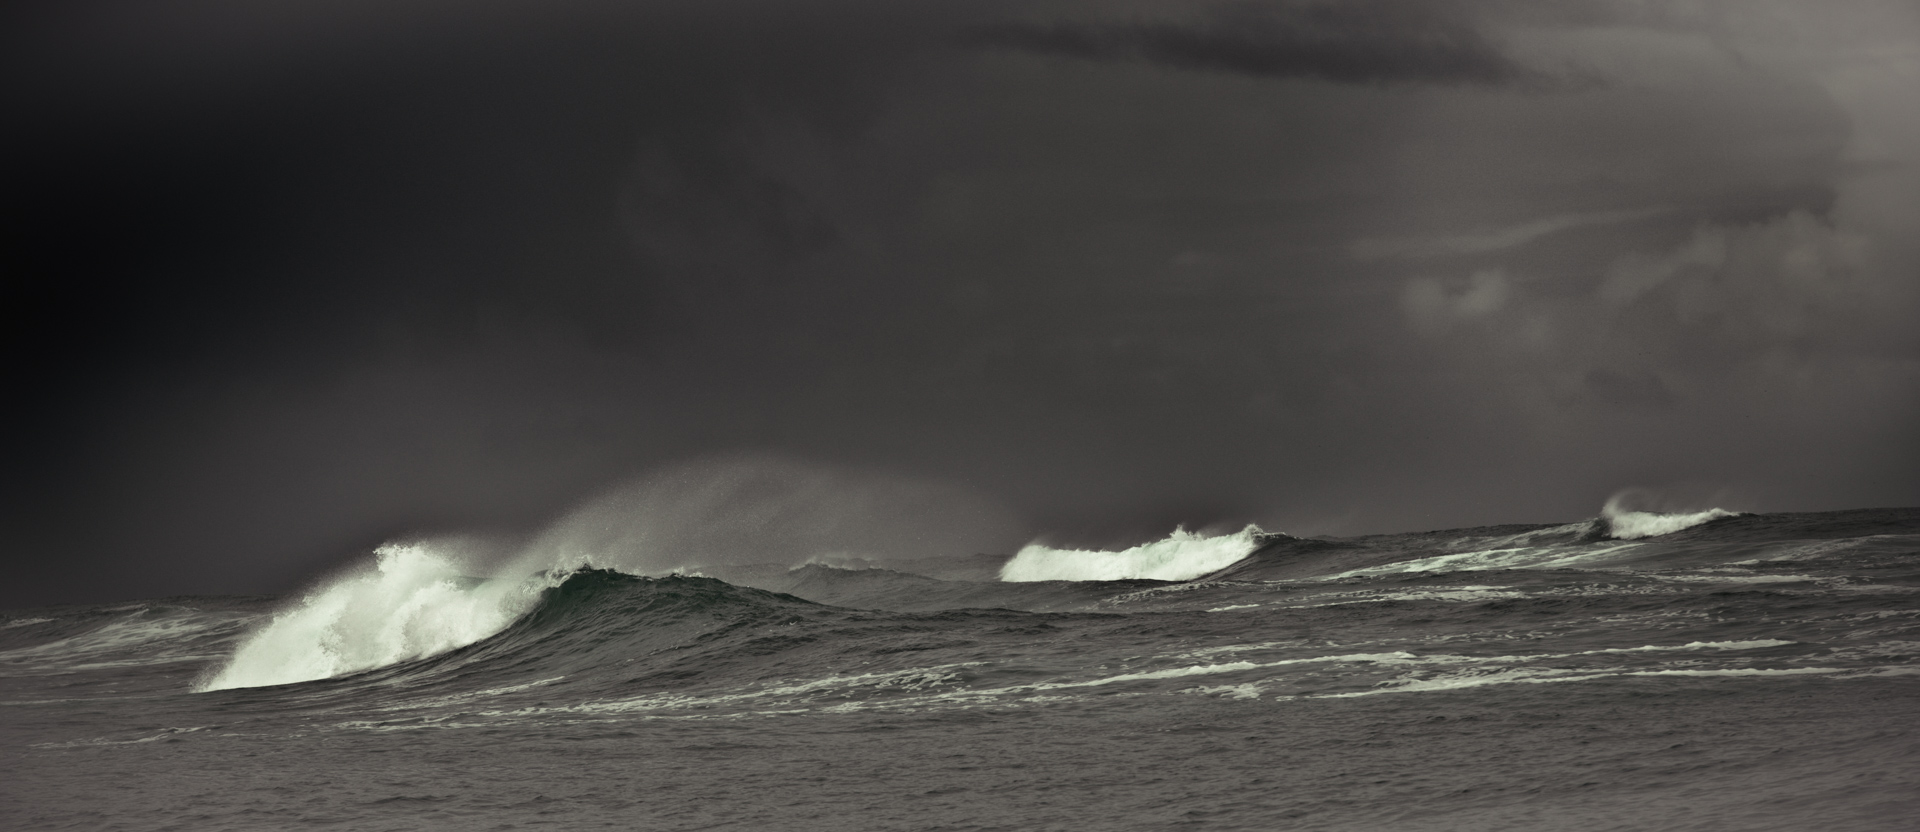 Pacific swell